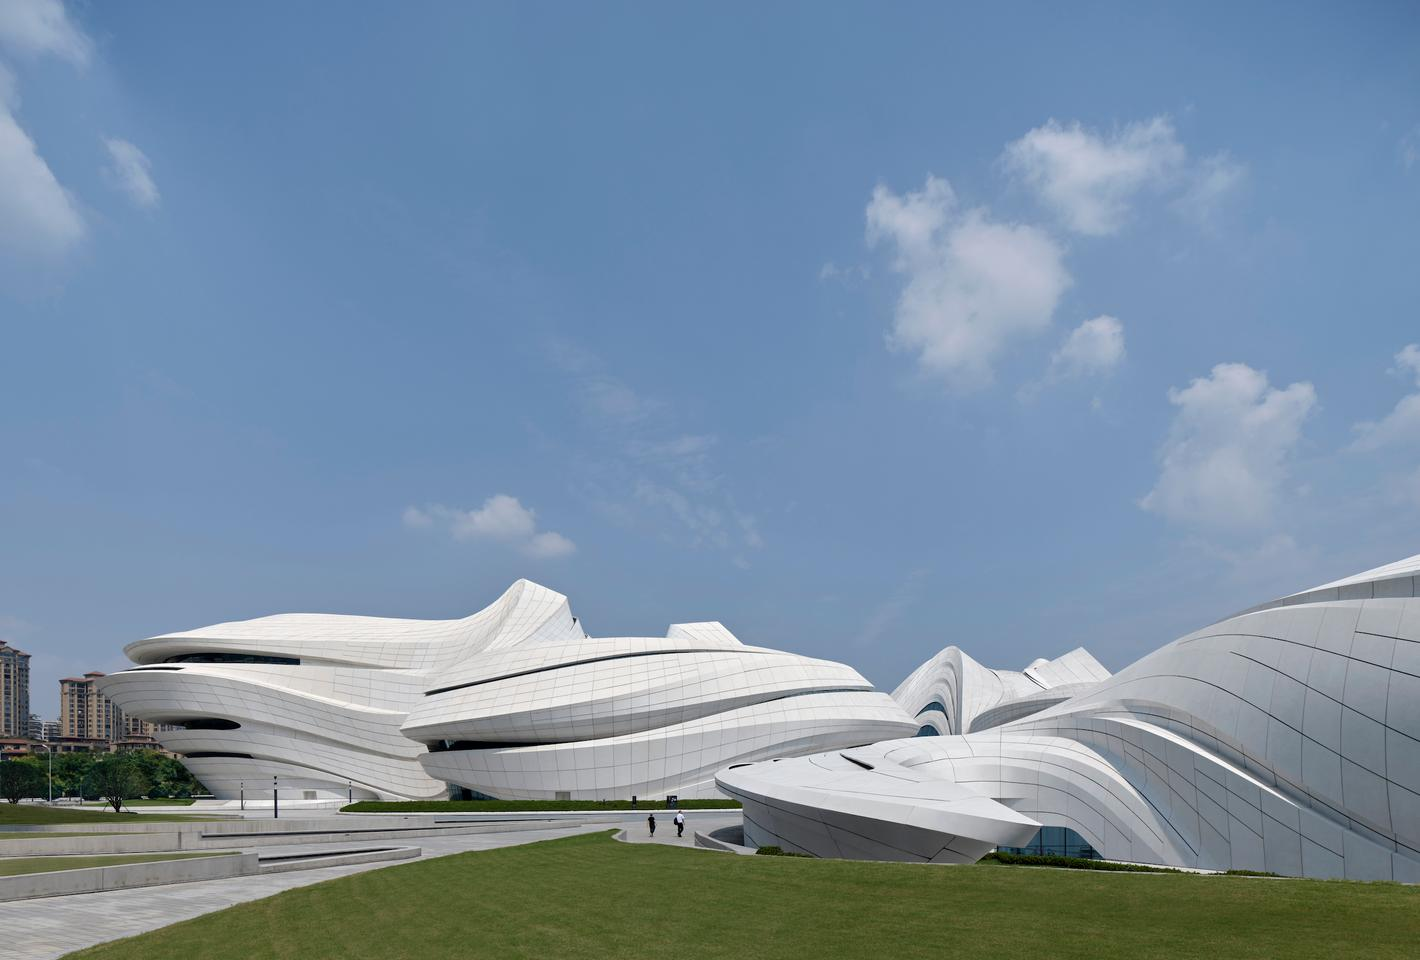 The Changsha Meixihu International Culture & Arts Centre was first conceived back in 2011